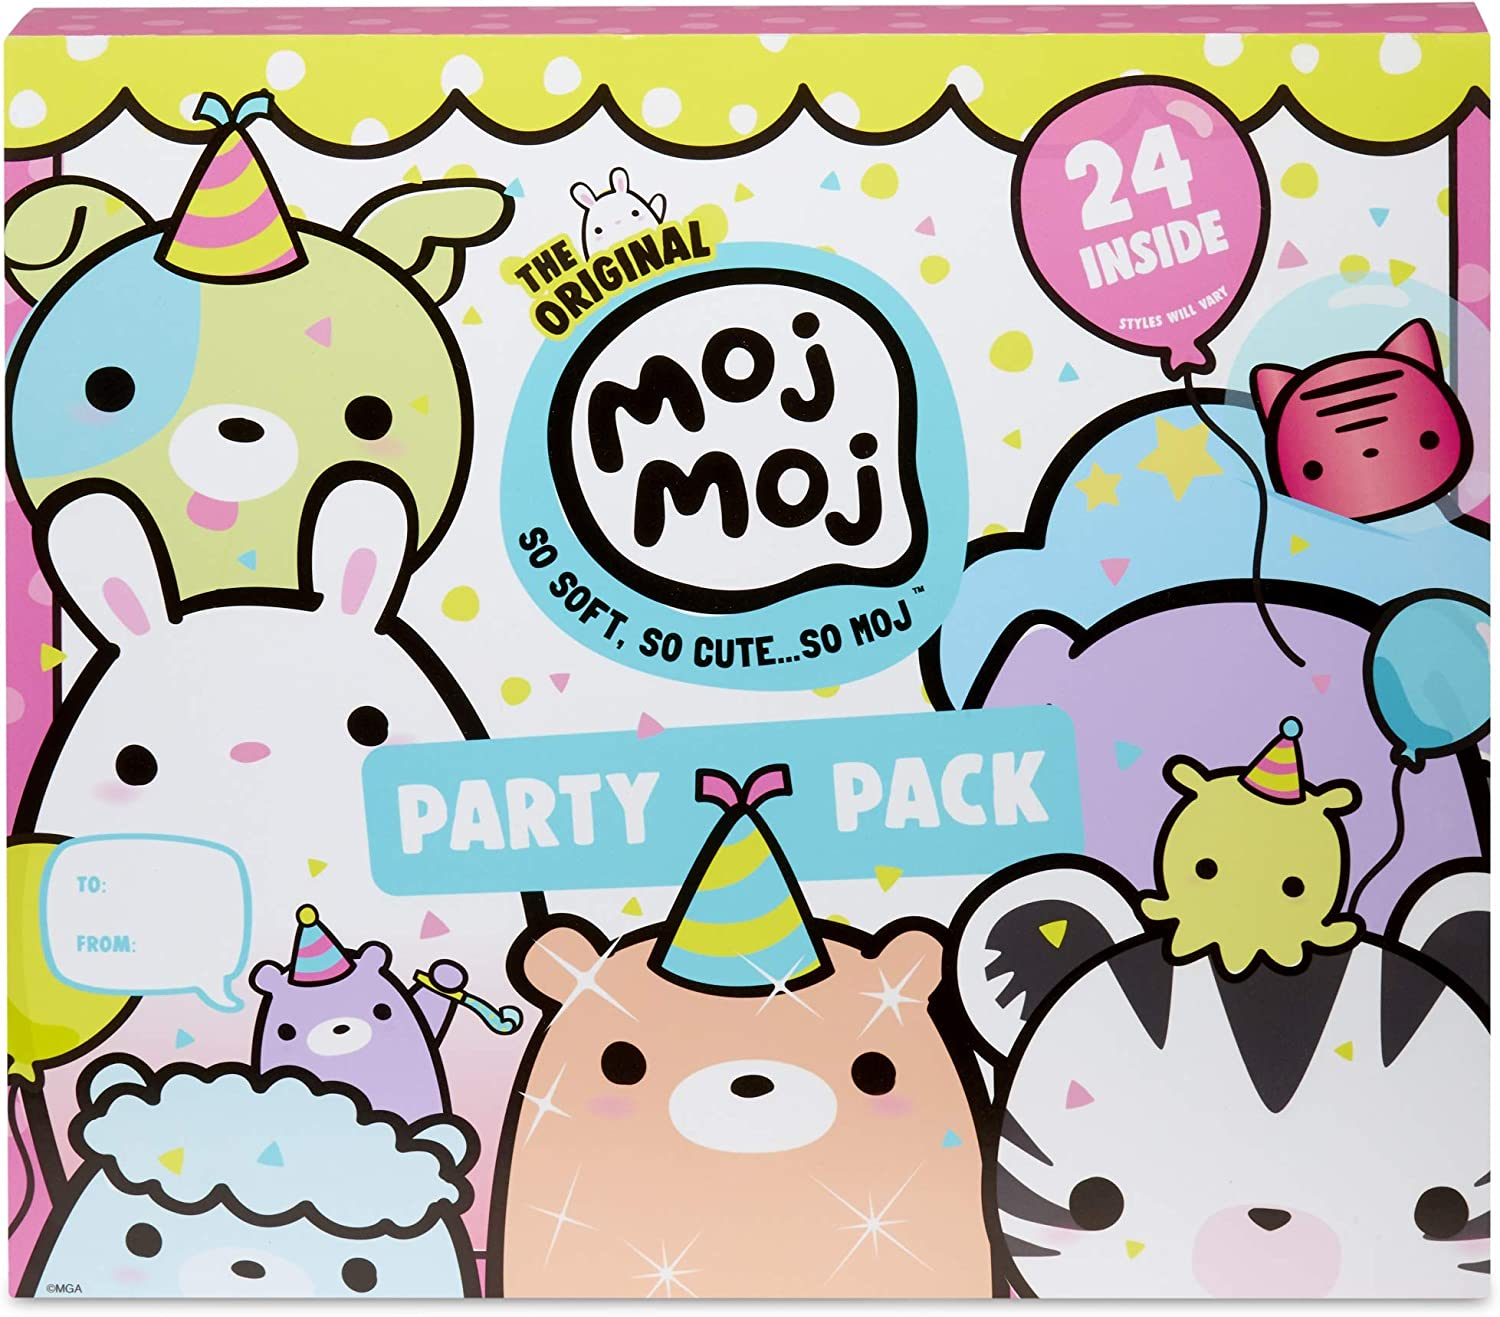 Moj Moj The Original Party Pack with 24 Surprise